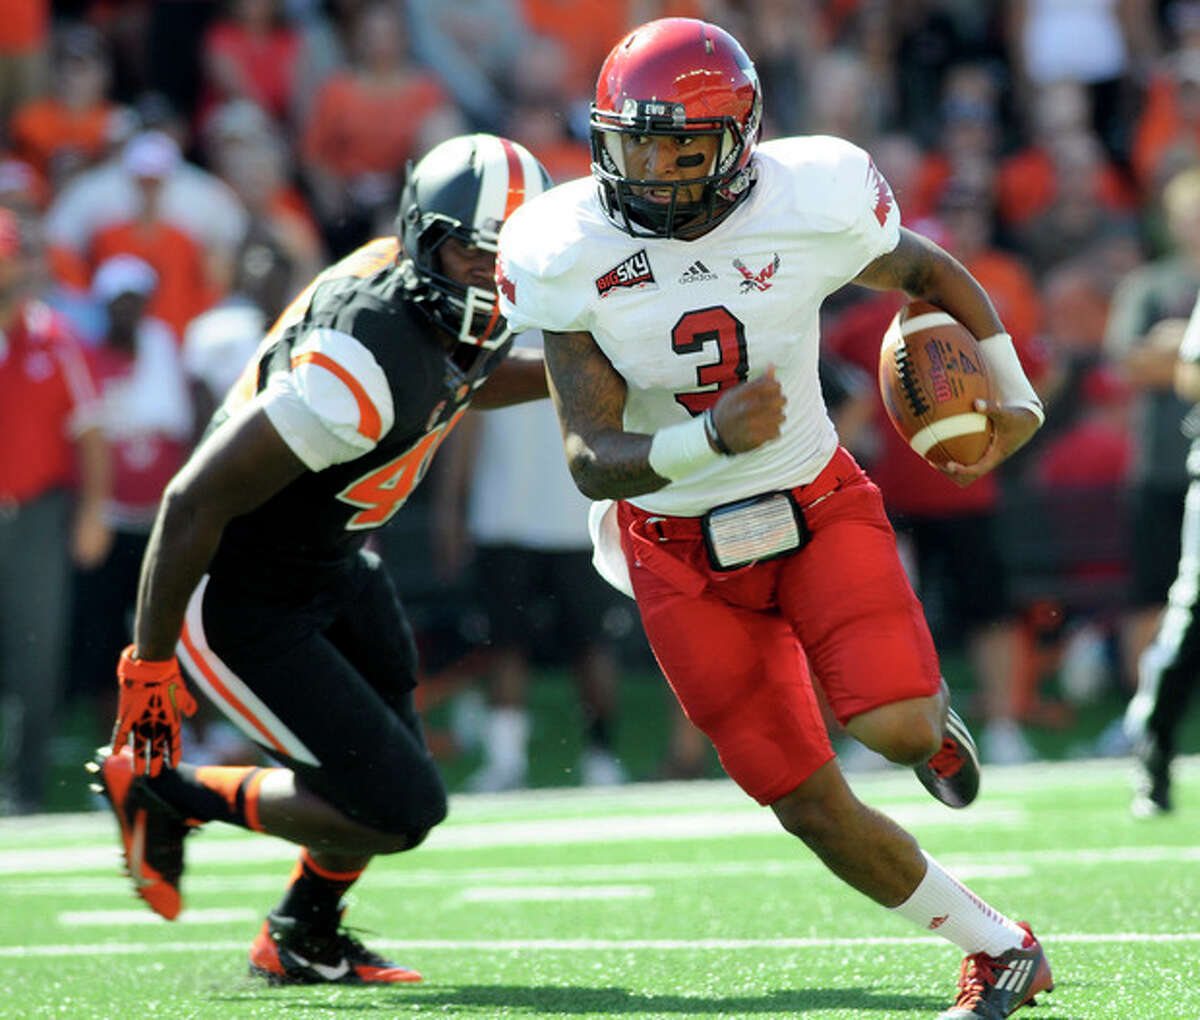 Eastern Washington's Vernon Adams Jr. (3) runs against Oregon State during an NCAA college football game, Saturday, Aug. 31, 2013, in Corvallis, Ore. Adams passed for 411 yards and ran for 107 to lead Eastern Washington to a 49-46 victory over No. 25 Oregon State. (AP Photo/Corvallis Gazette-Times, Andy Cripe)